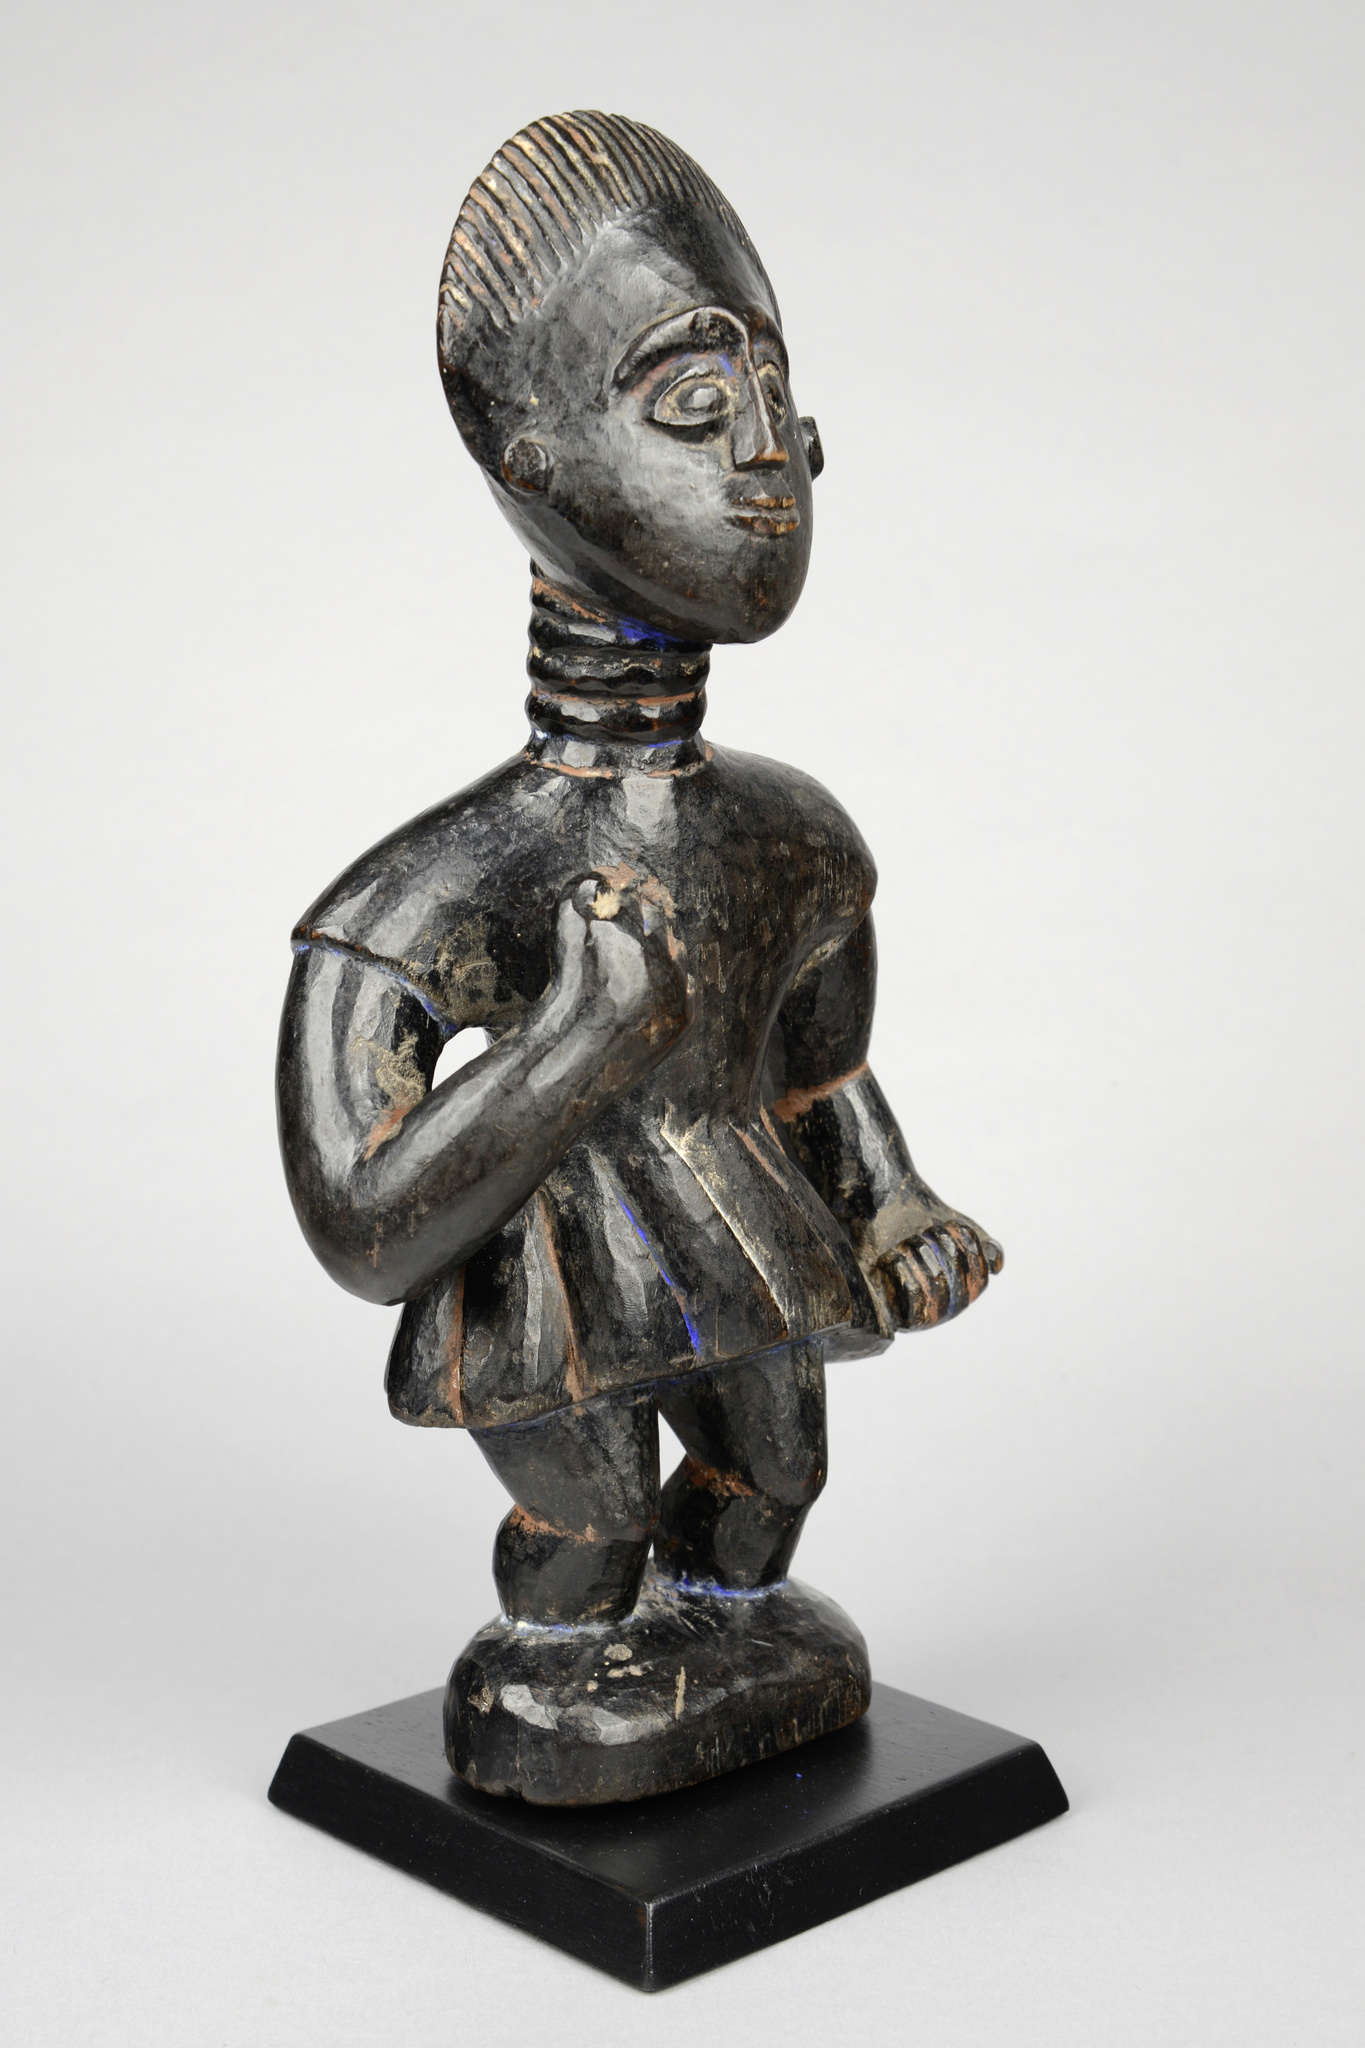 Standing figure with skirt